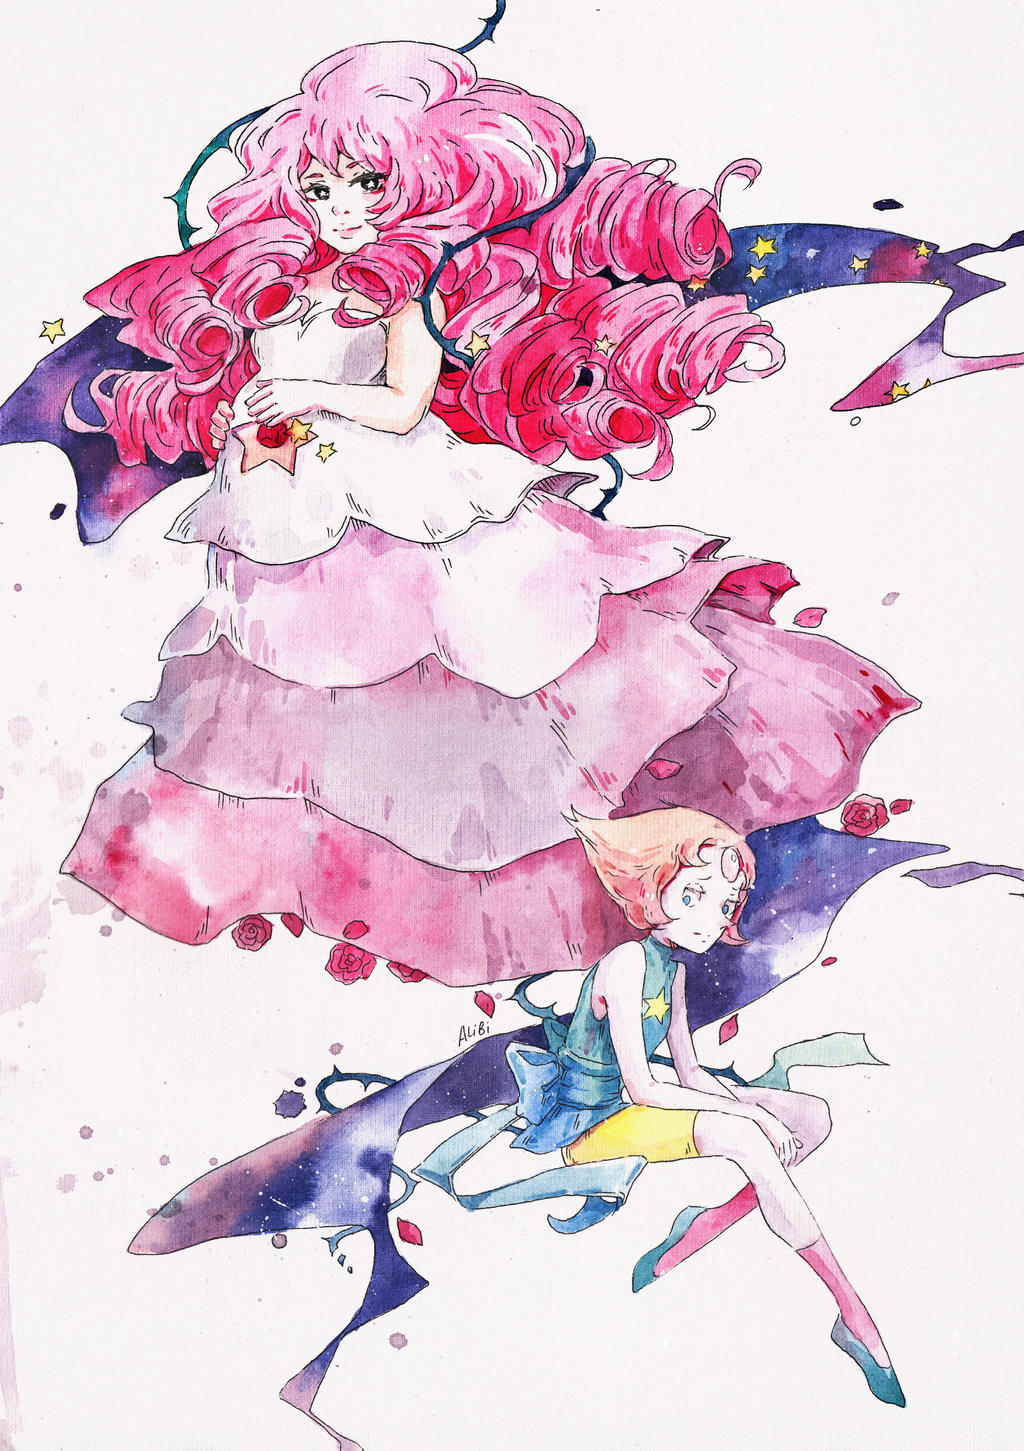 Rose quartz and pearl steven universe by analibi on deviantart - Rose quartz steven universe wallpaper ...